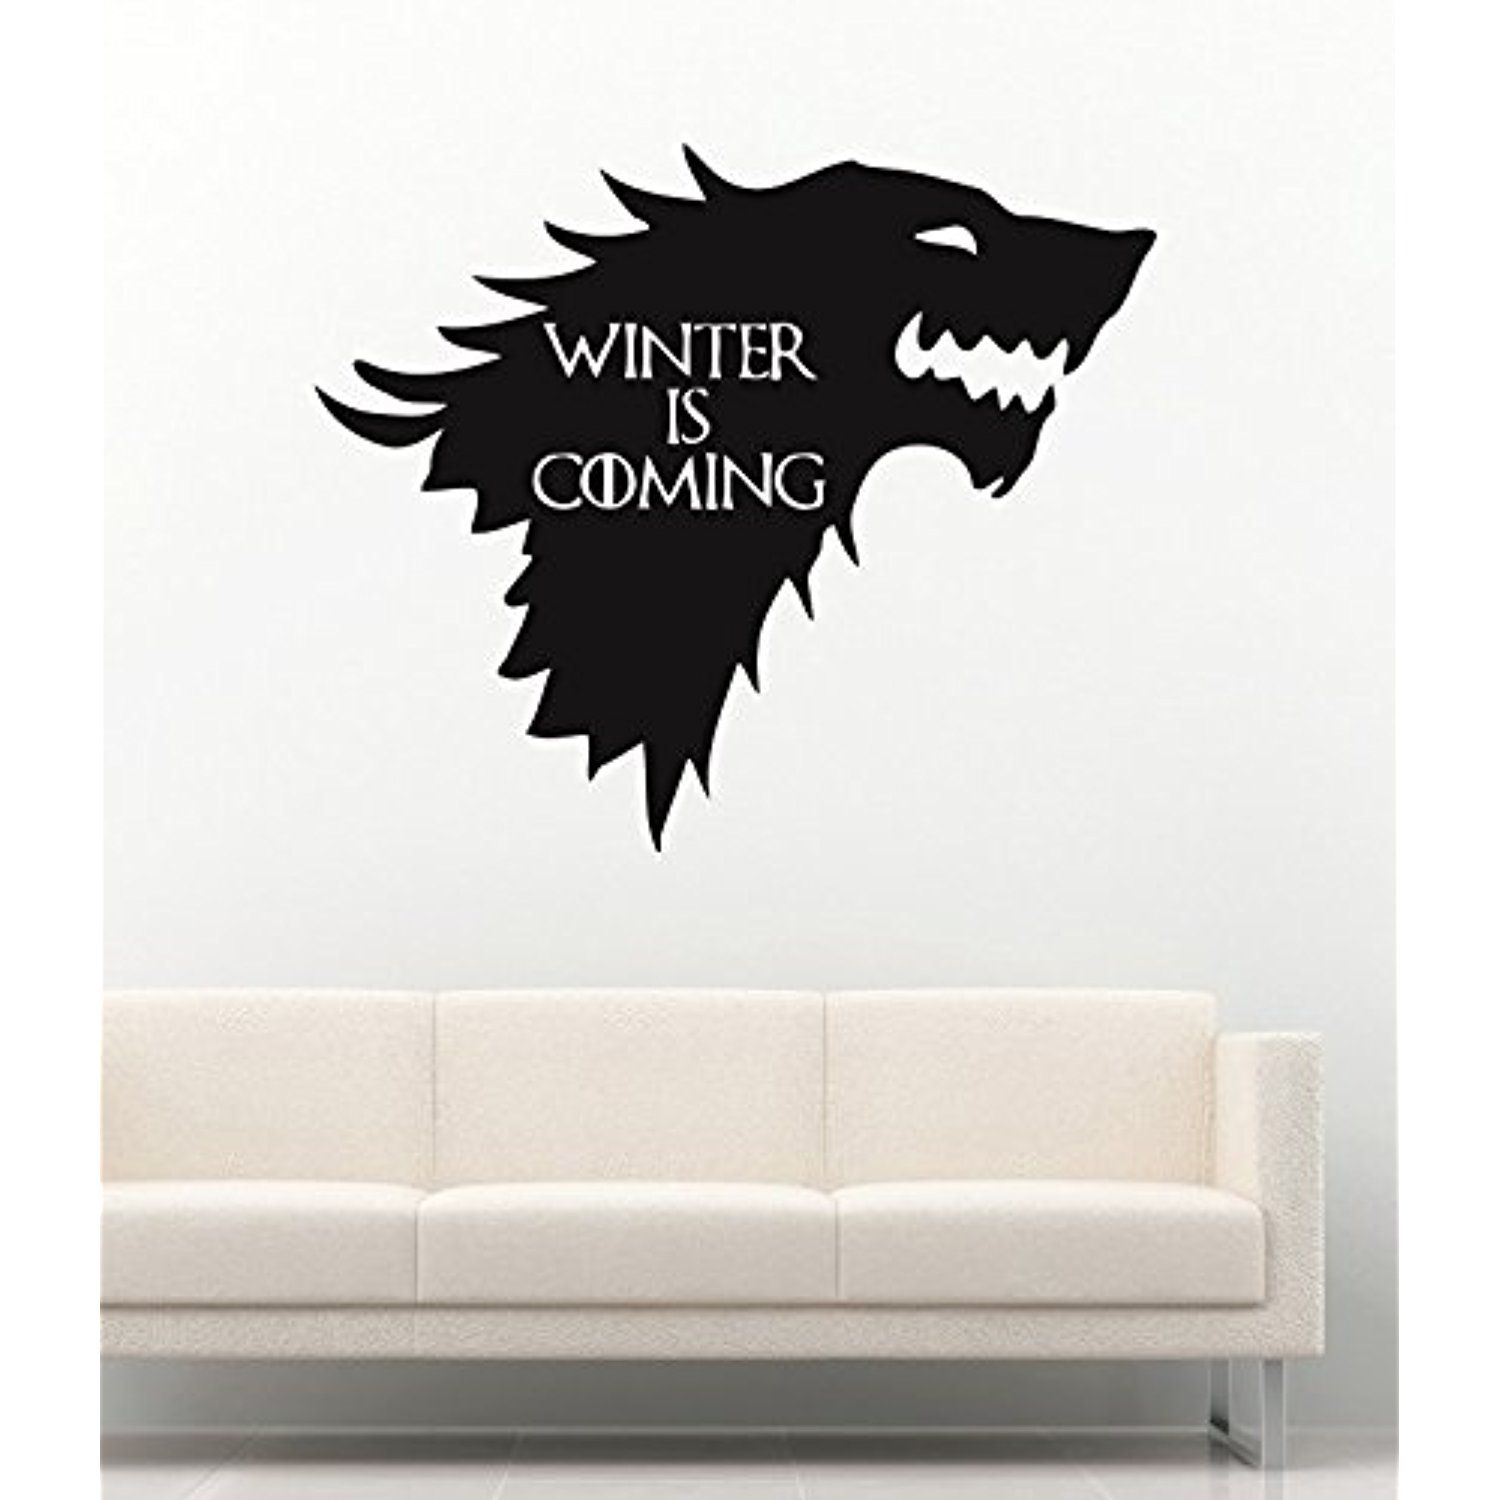 Wall decals movie film game of thrones winterfell logo winter is coming wolf stickers vinyl decor murals mk2100 for more information visit image link